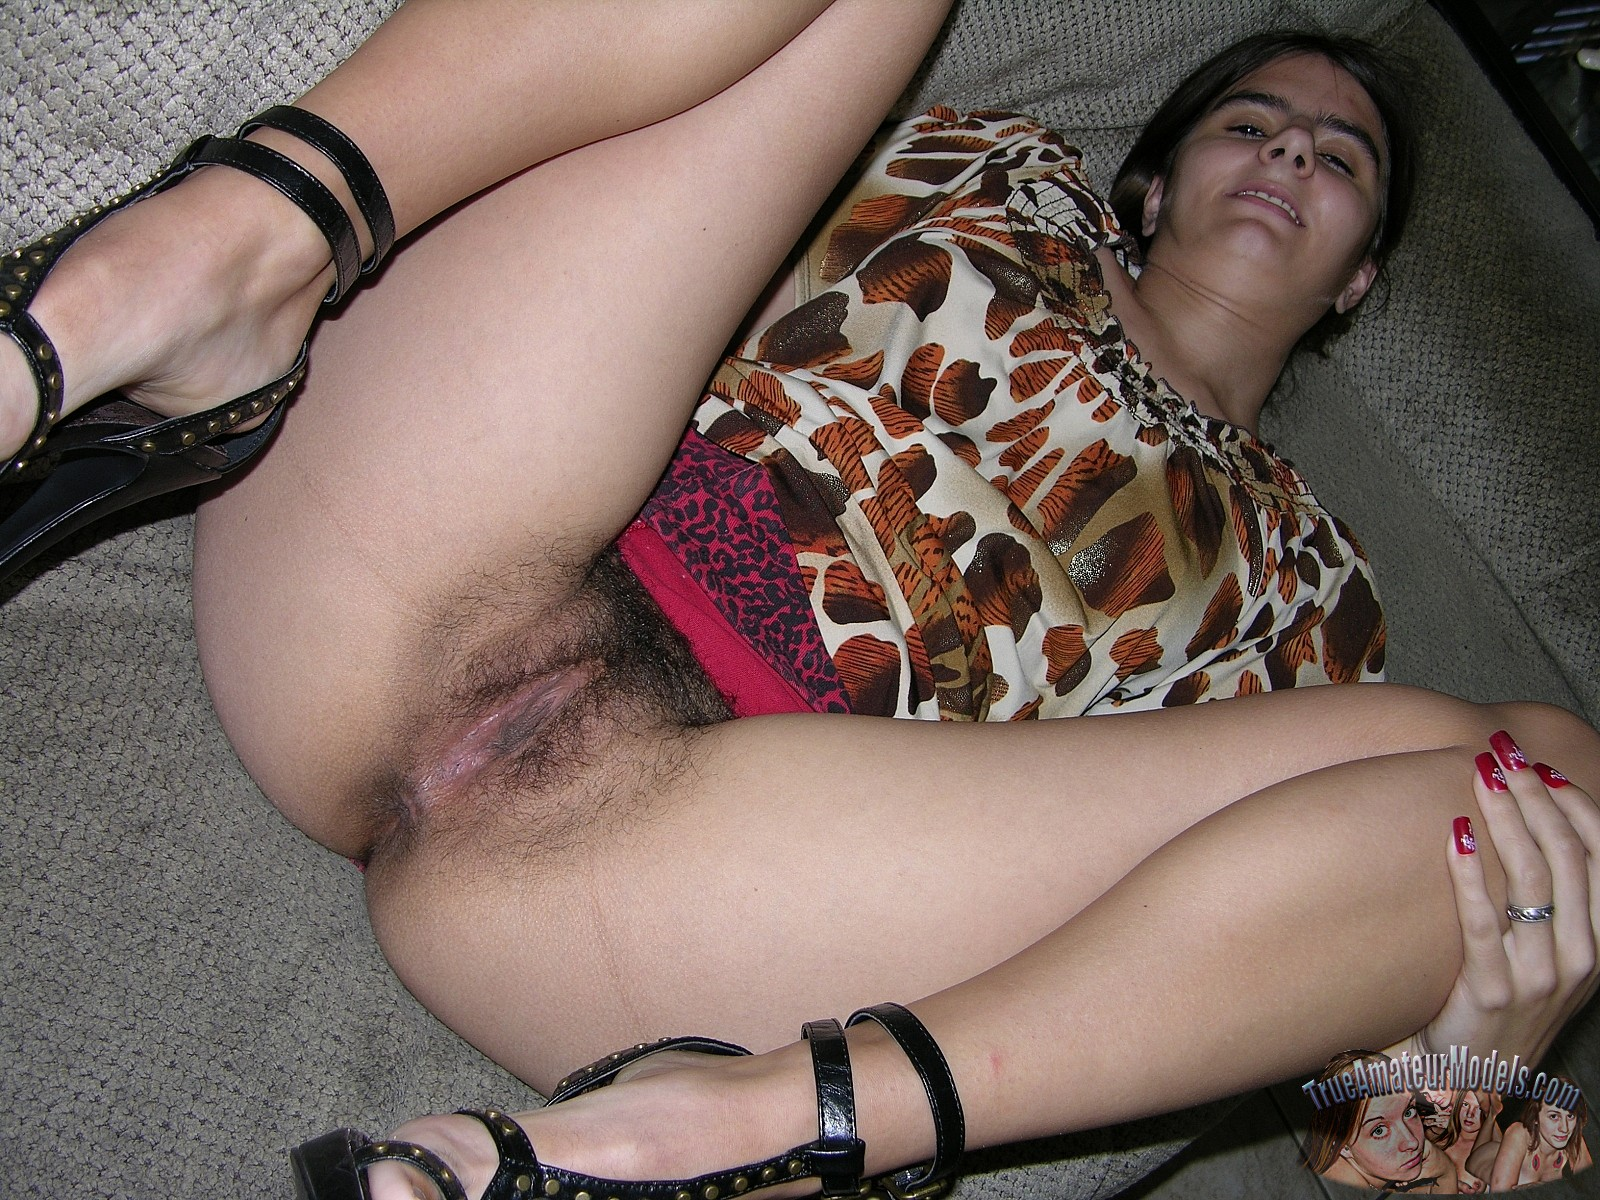 Hd pussy hair indian